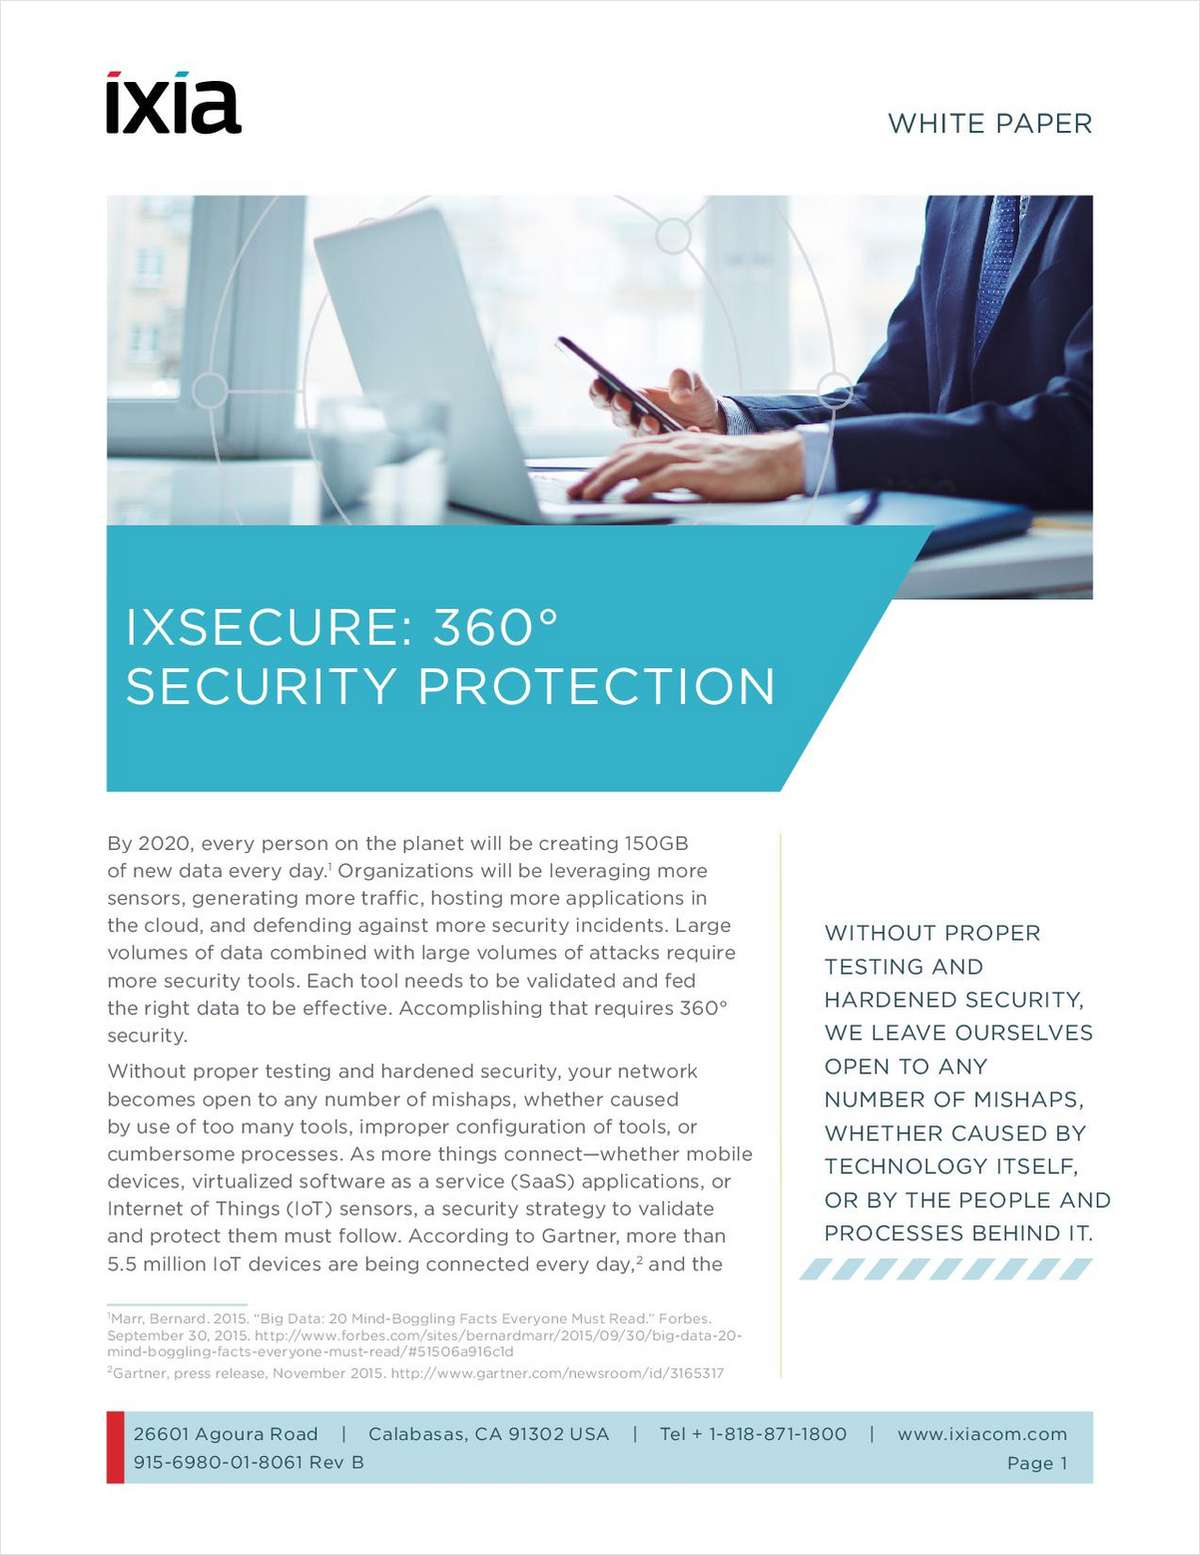 IxSecure: 360° Security Protection Free White Paper